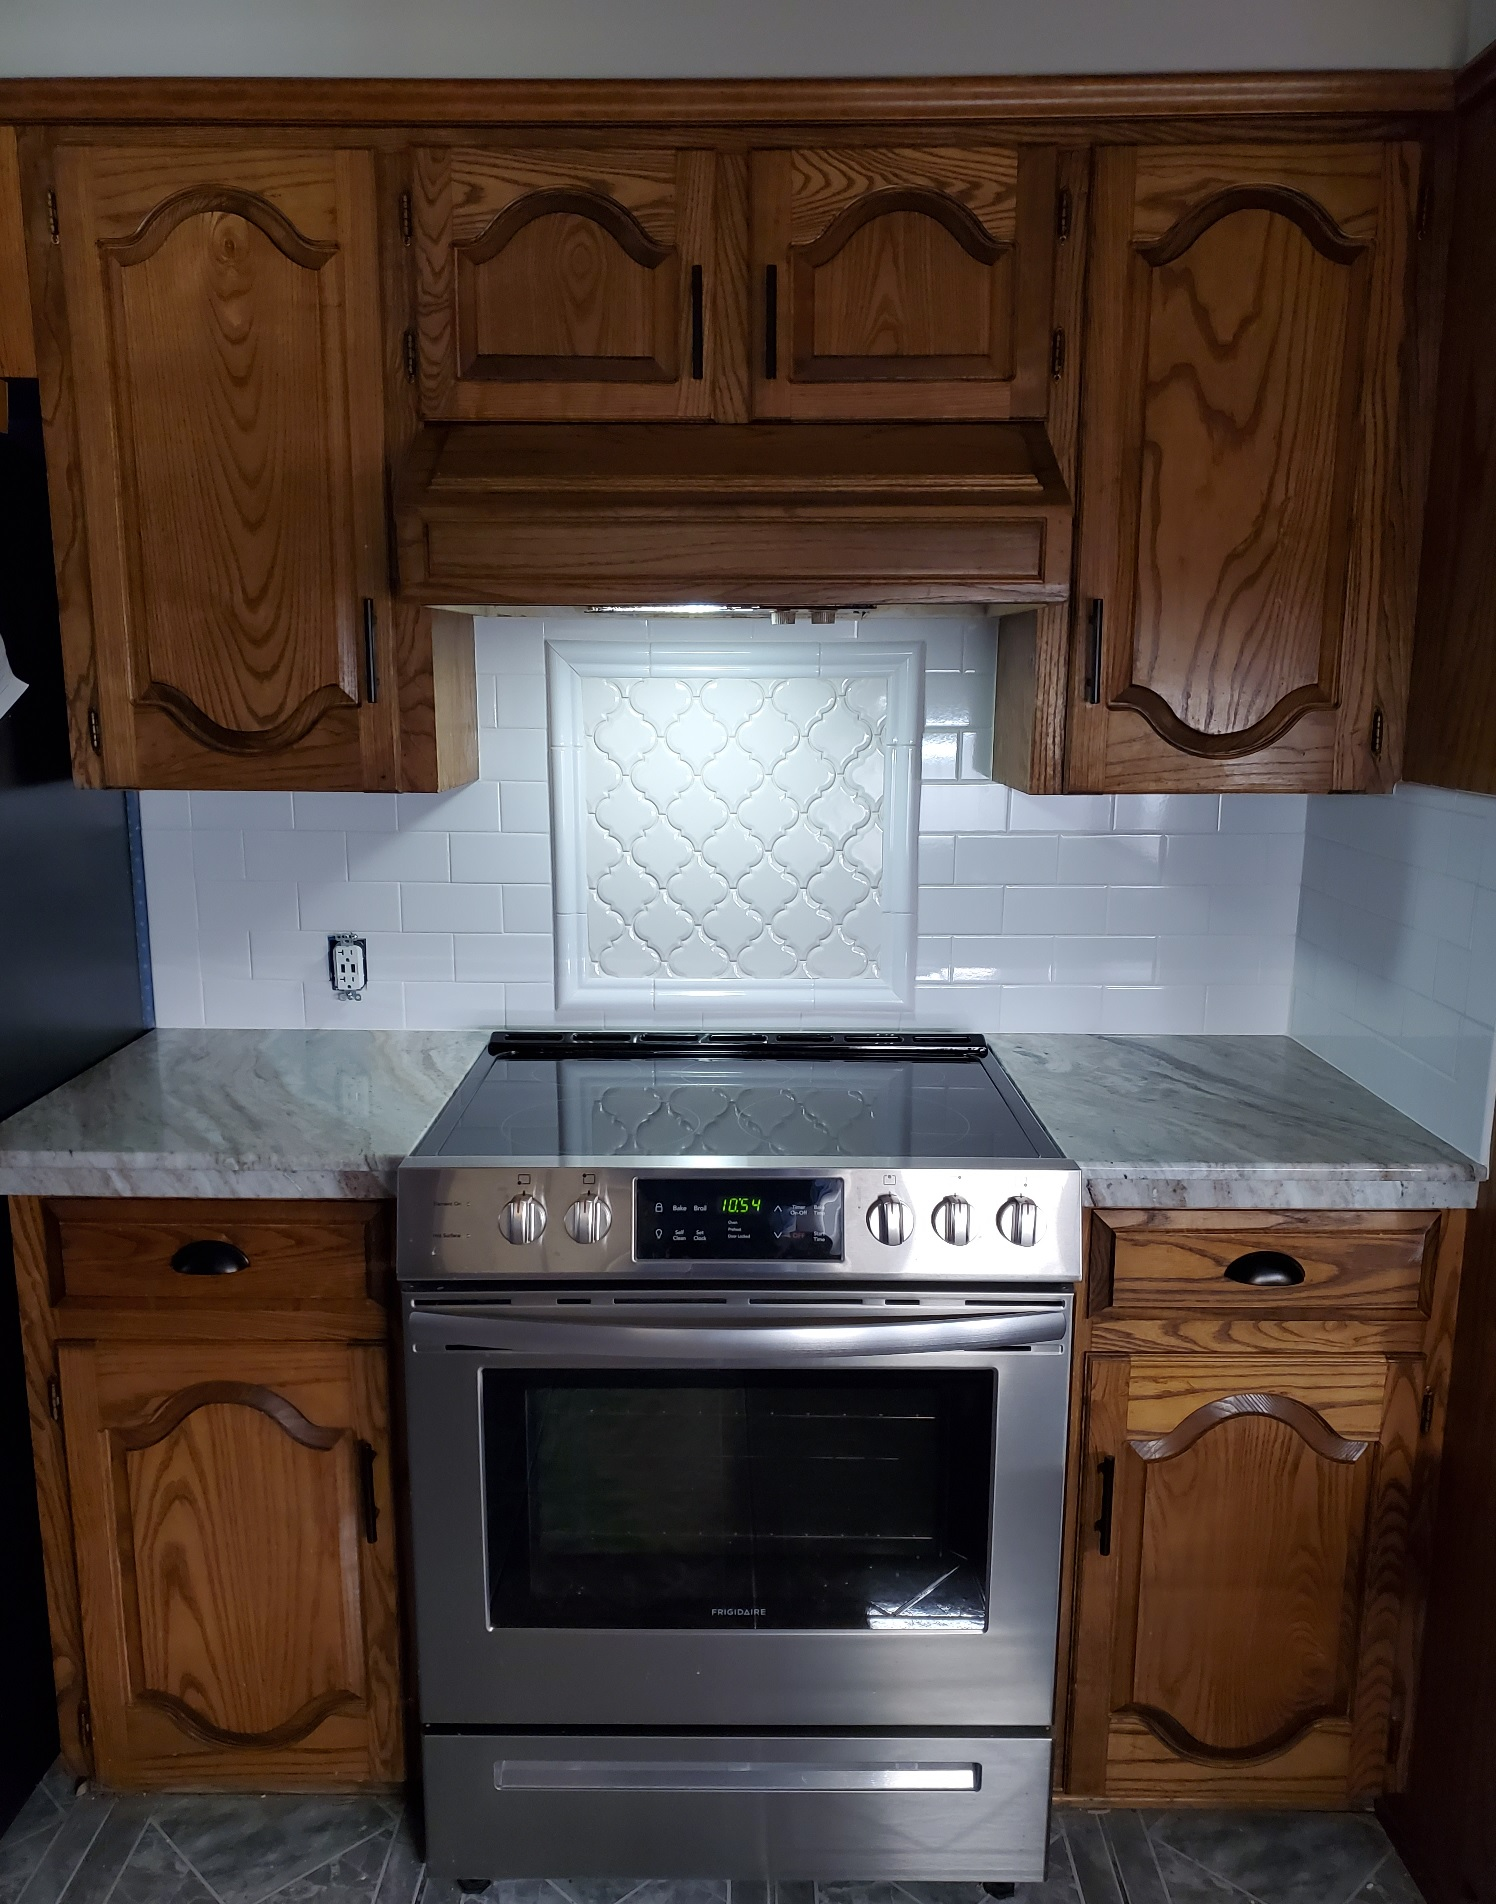 Countertops: 2CM Fantasy Brown Polished Exotic Marble, Backsplash: 3x6 Bright White Ice Subway Tile, Stove Splash: White Arabesque Tile Outlined with Bright White Chairrail